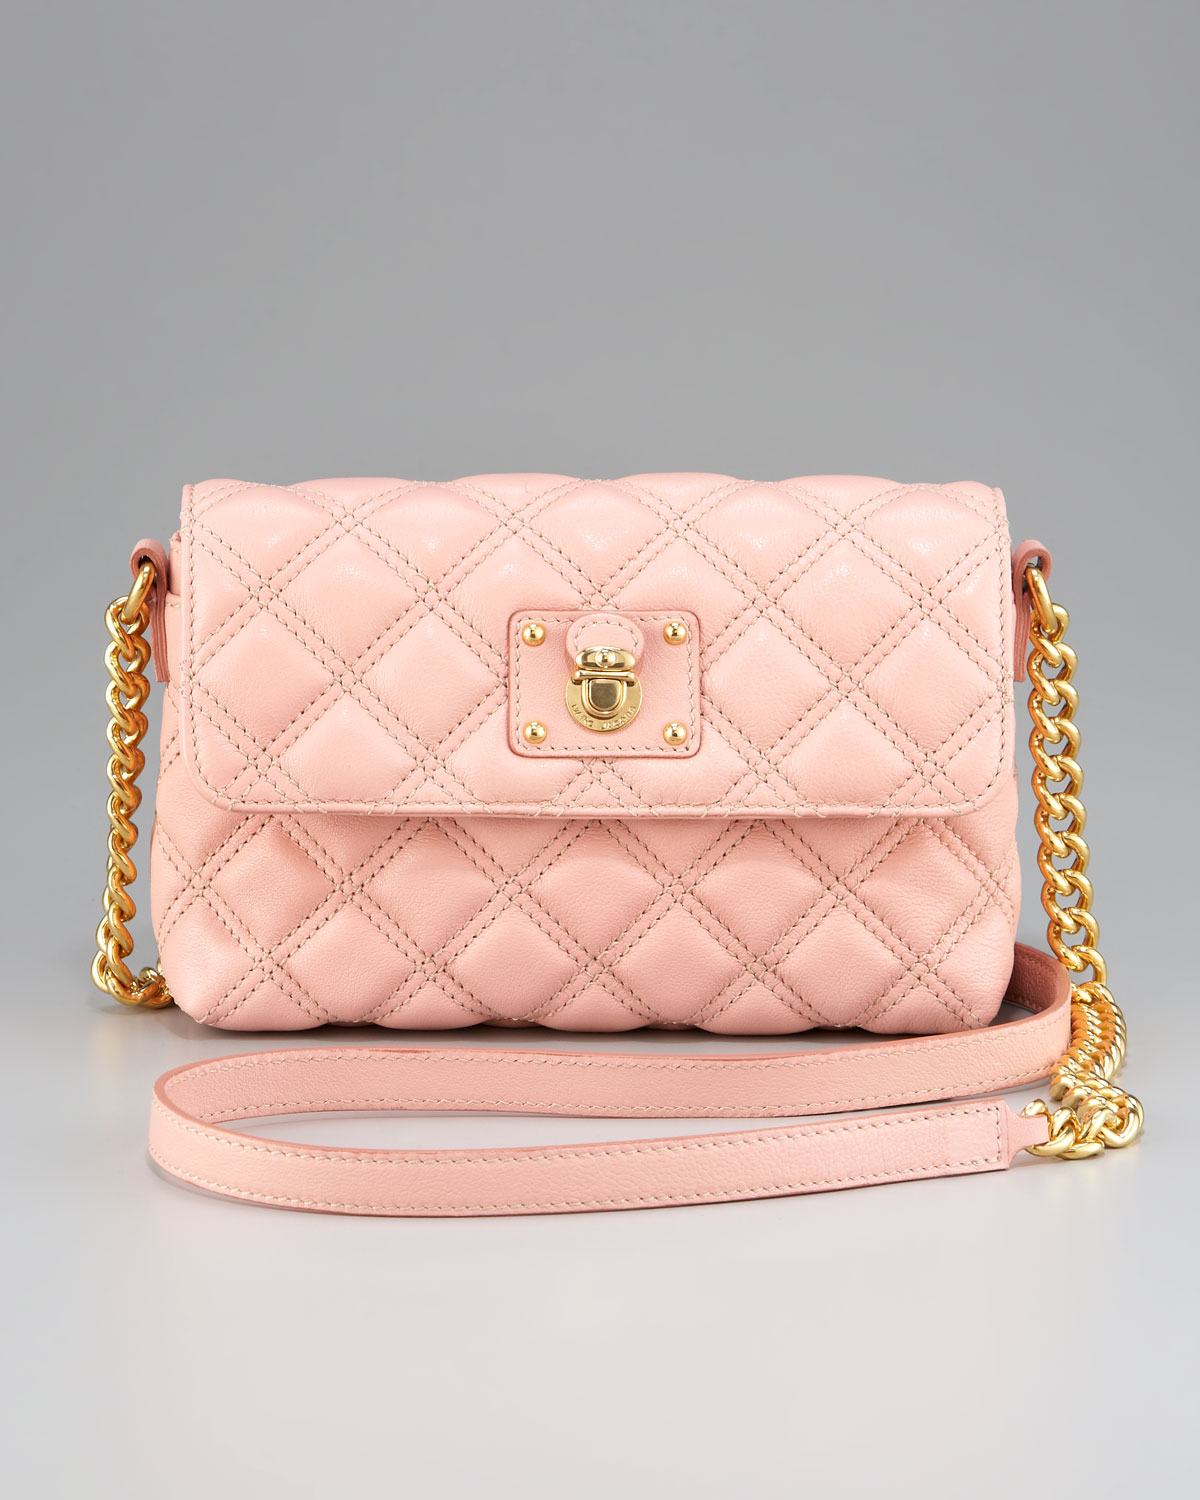 Marc jacobs Small Single Quilted Bag in Pink   Lyst : marc jacobs single quilted bag - Adamdwight.com